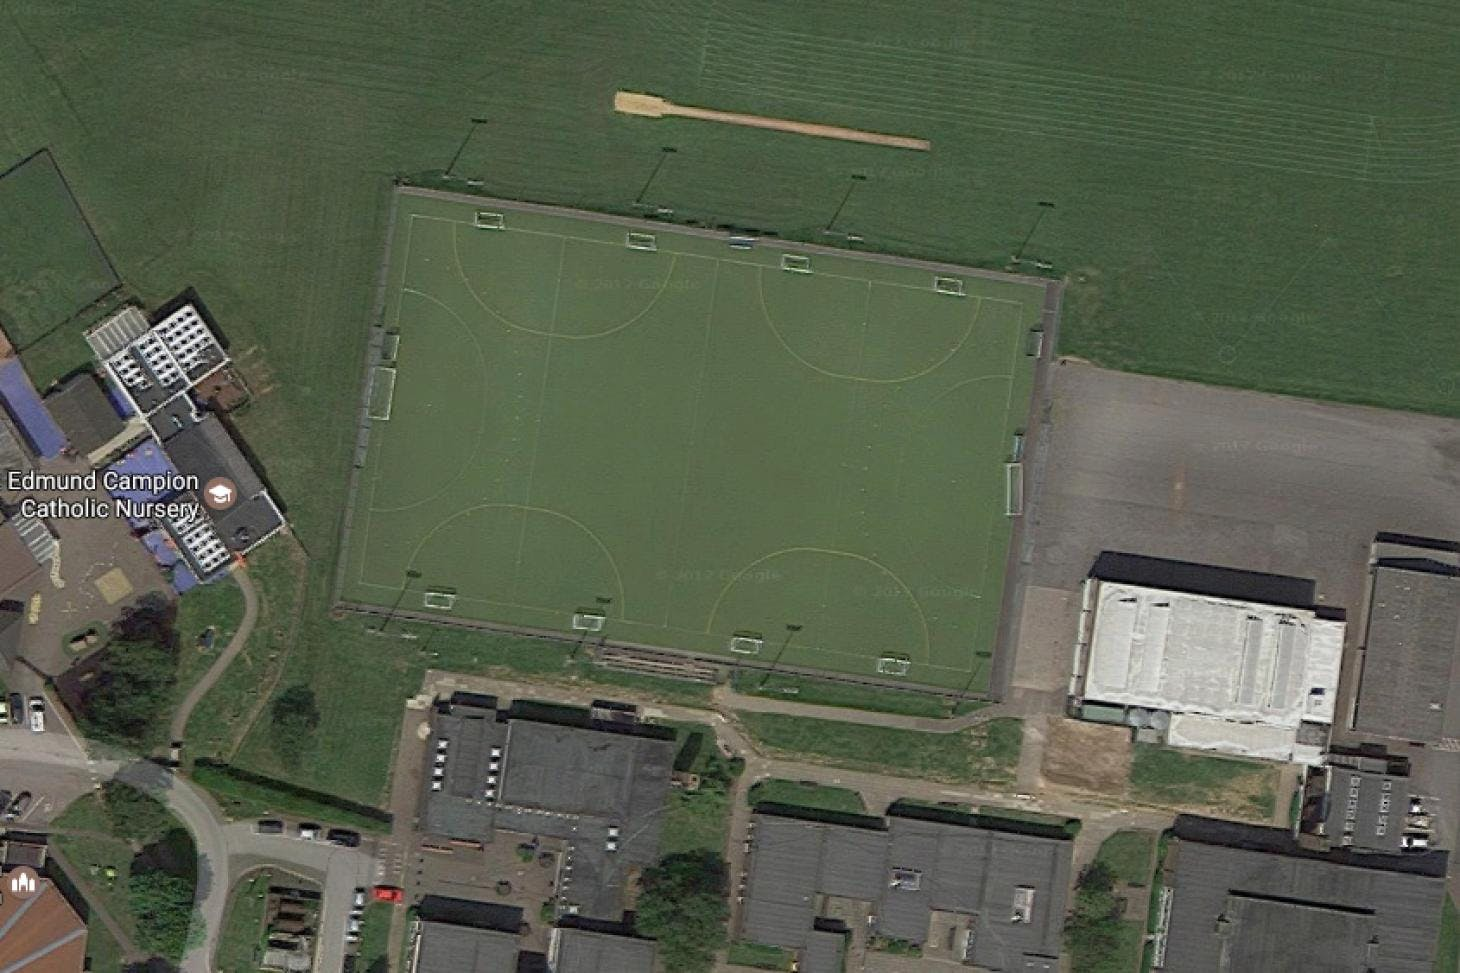 Altwood Church of England School 5 a side | Astroturf football pitch